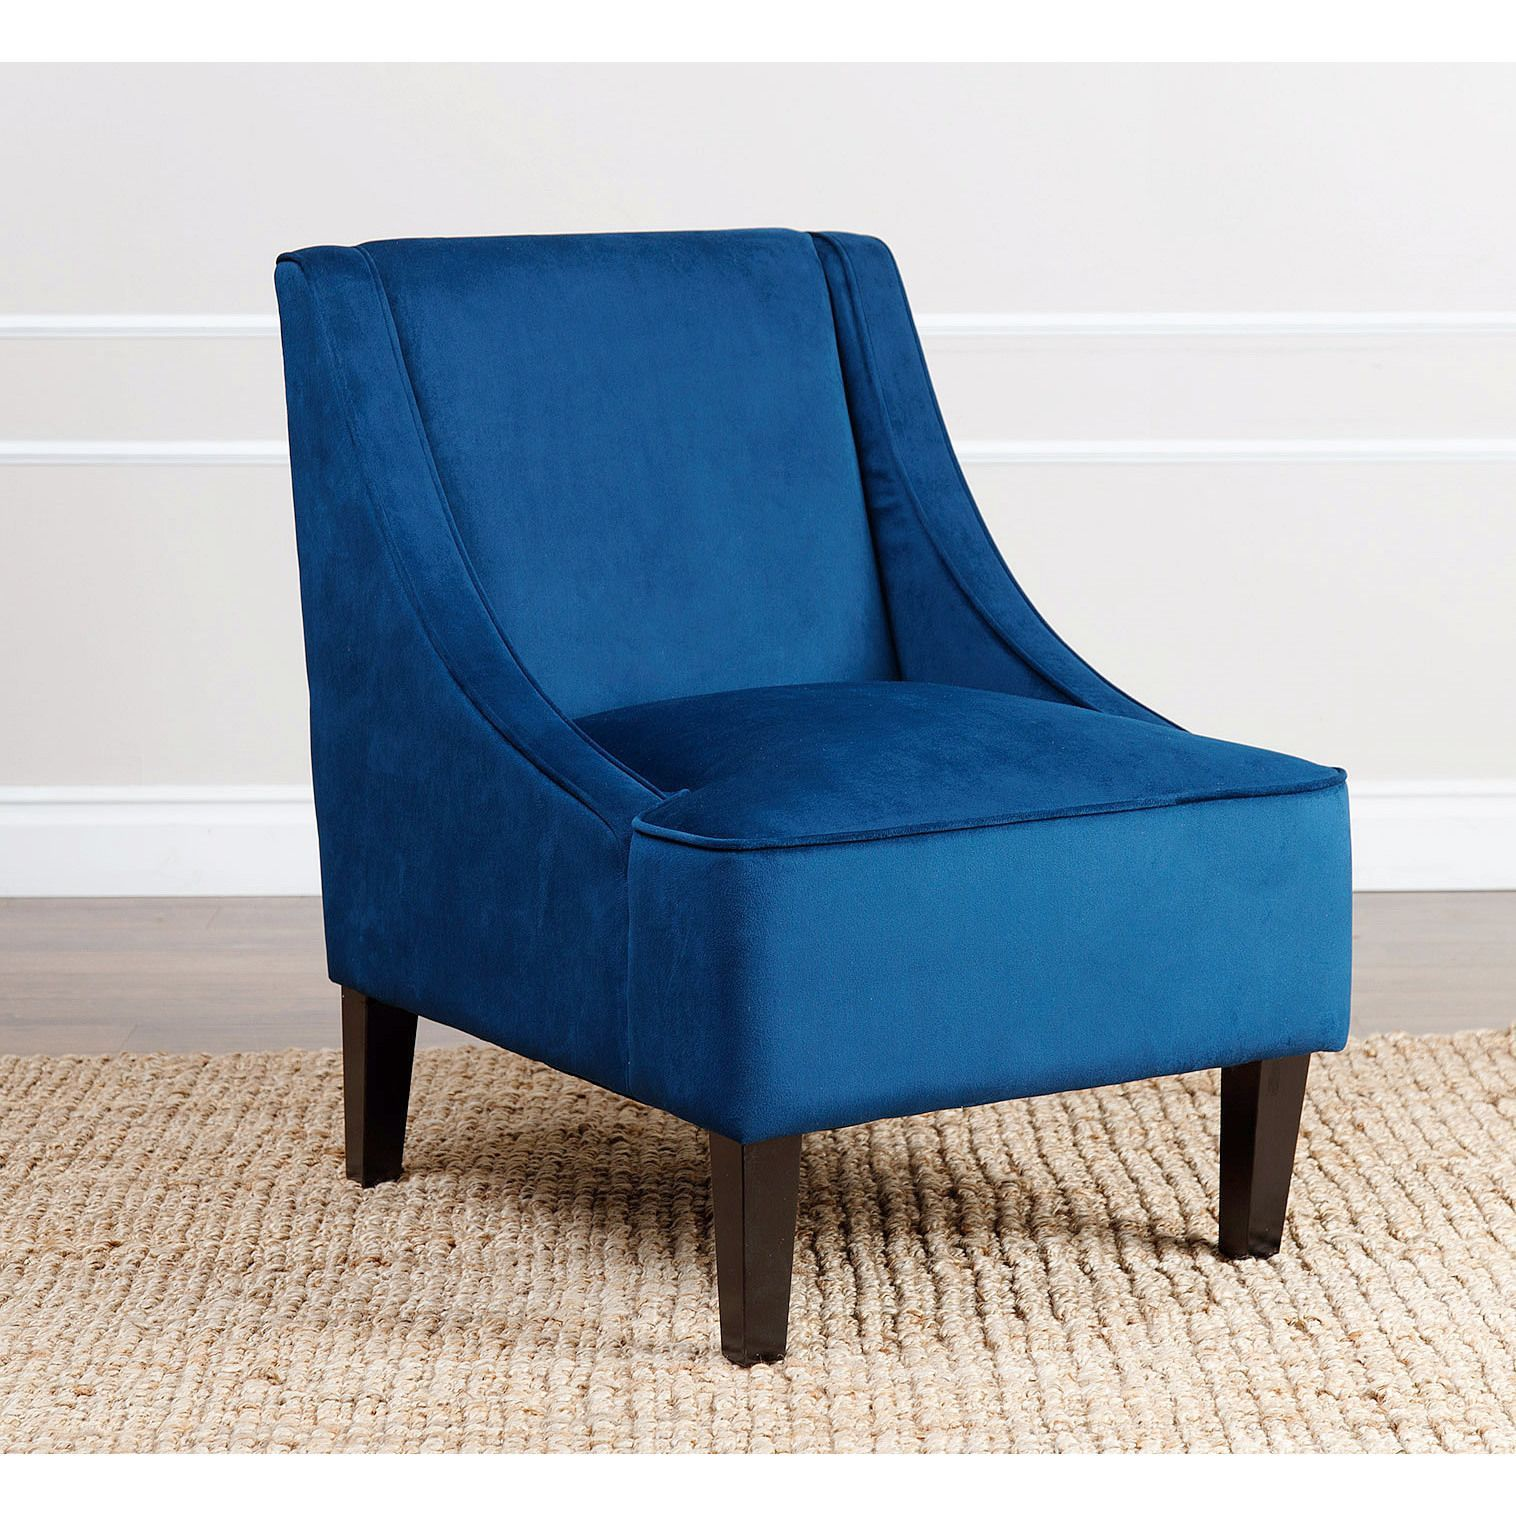 teal leather bedroom swivel tiffany printed fabric chairs of side navy beautiful ottoman accent full blue and size chair brown cheap lounge armchair